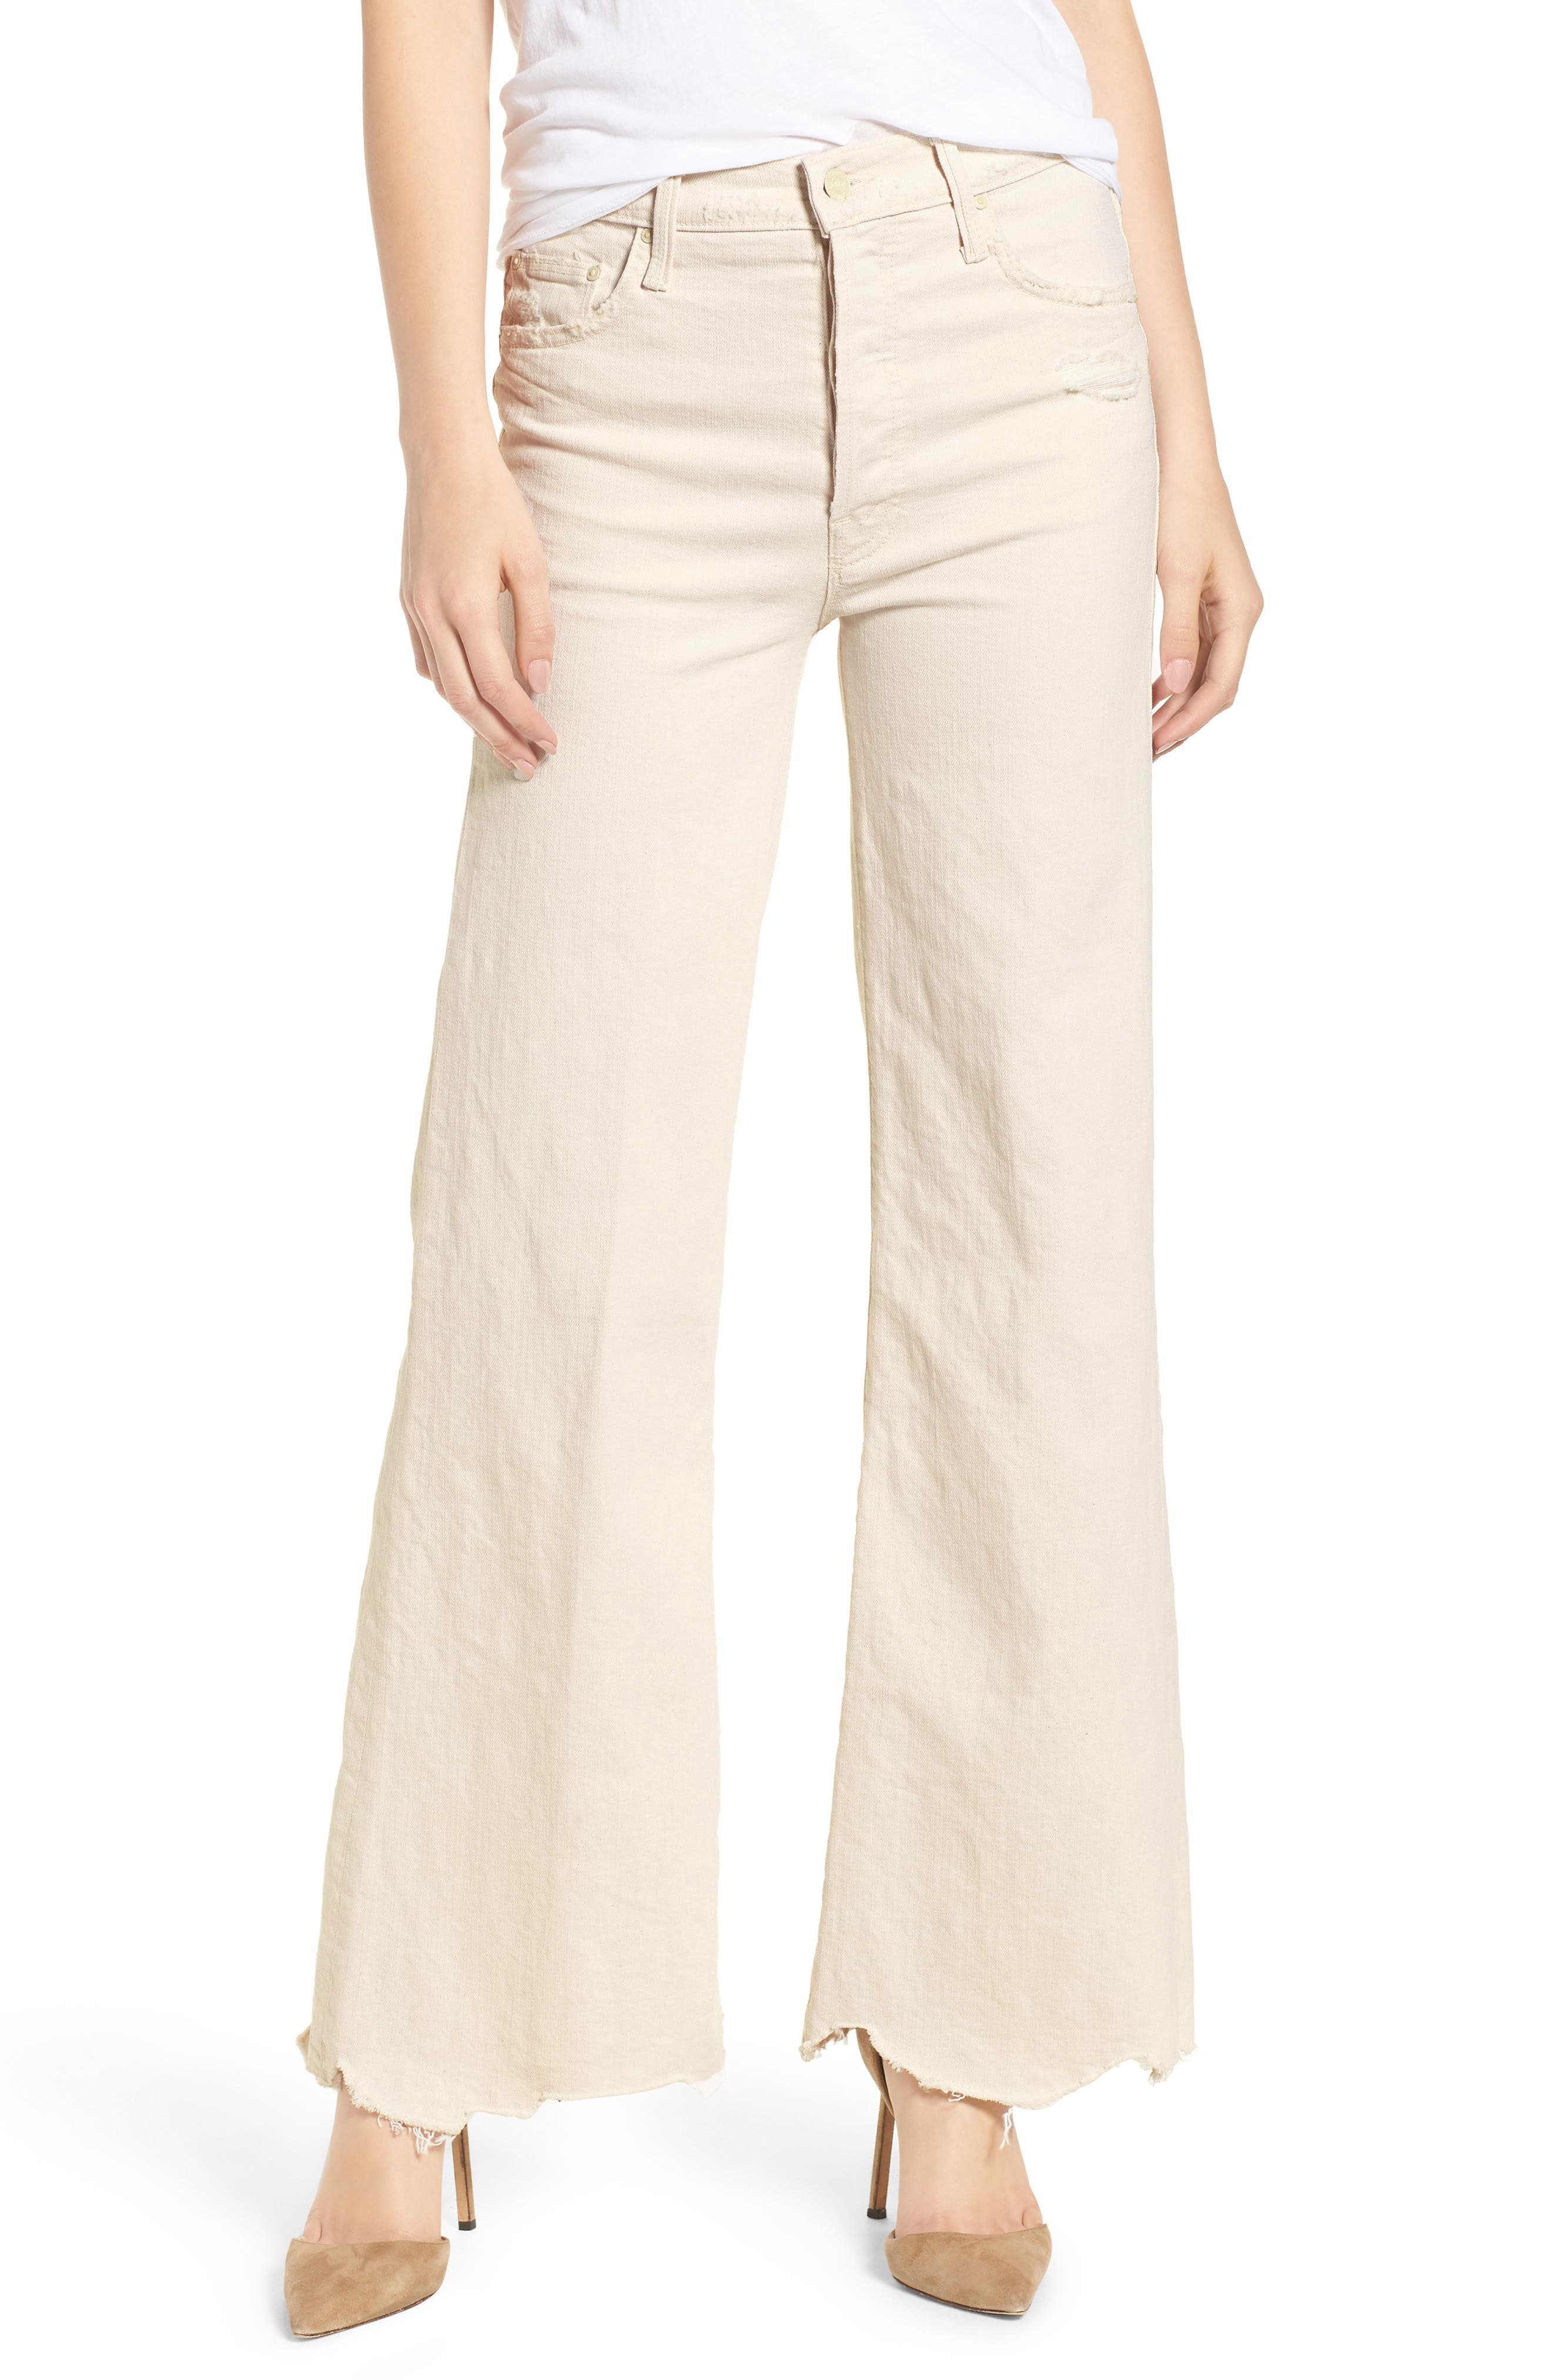 THE TOMCAT CHEW RIPPED HIGH WAIST FLARE JEANS